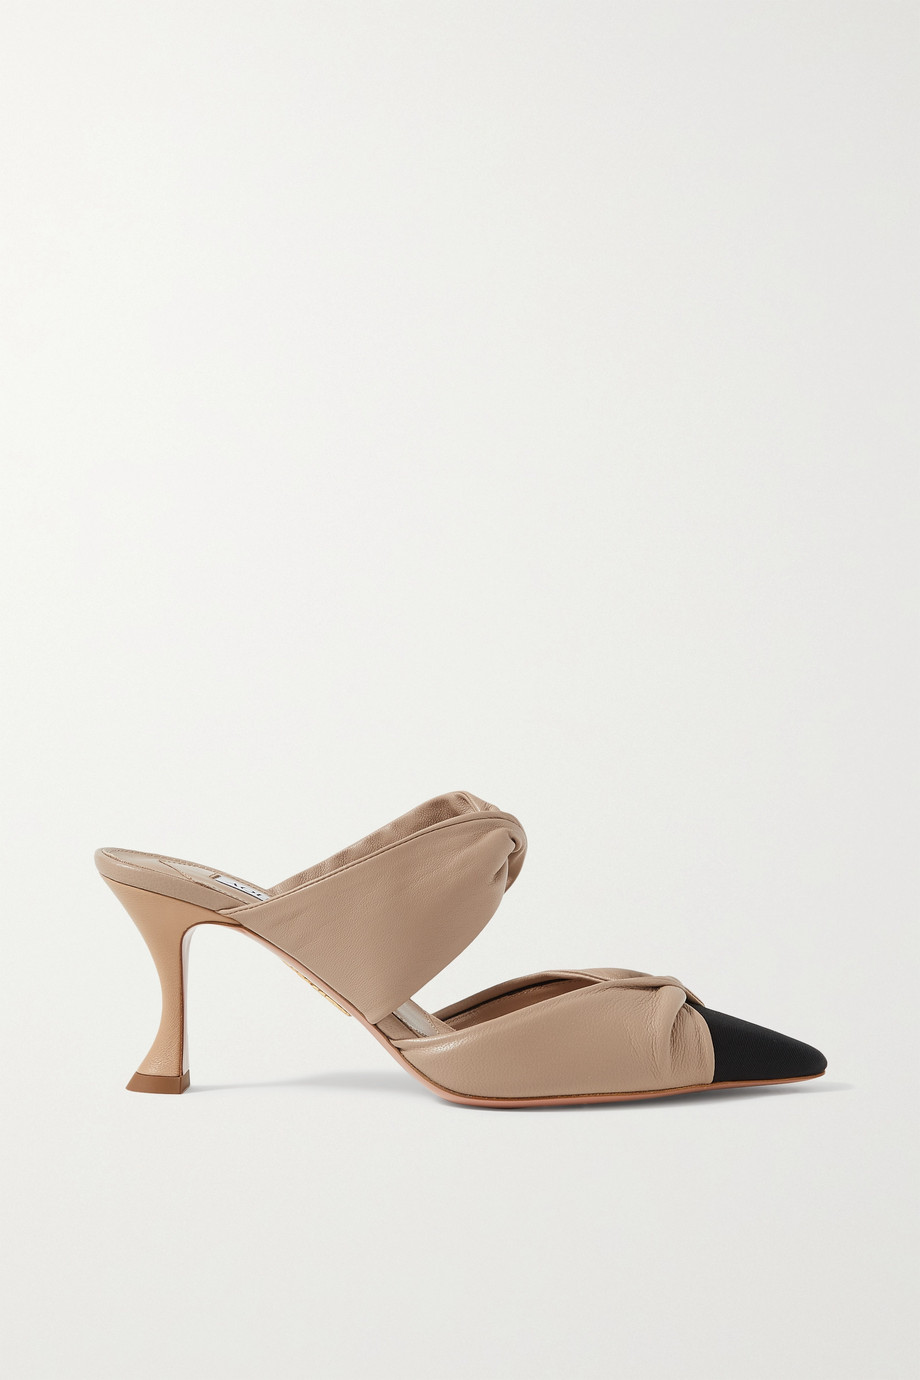 AQUAZZURA Twist 75 faille-trimmed leather mules